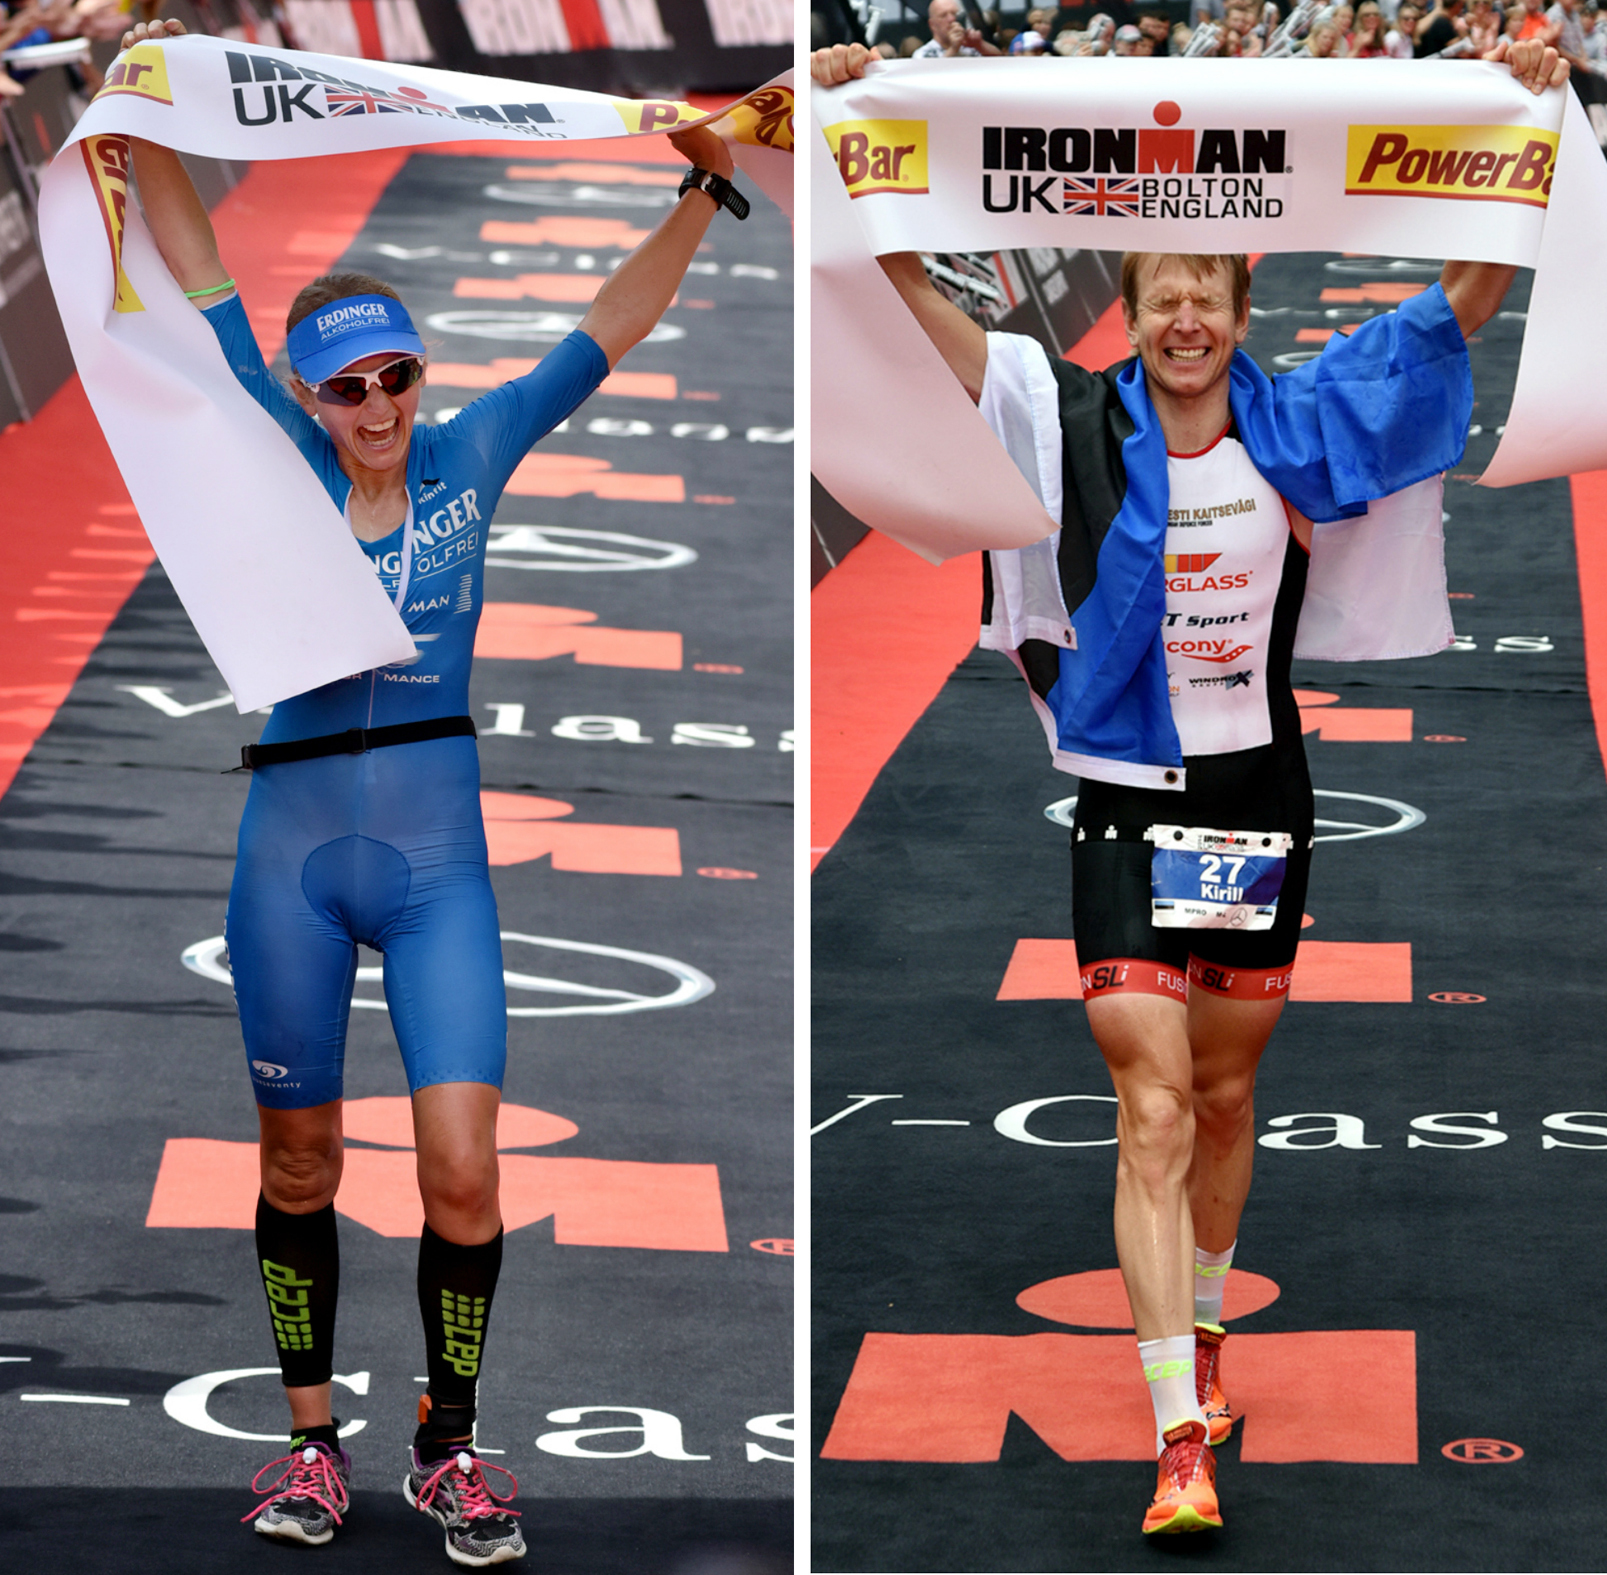 WINNERS: From left, Lucy Gossage and Kirill Kotsegarov crossing the finish line at Ironman 2016.